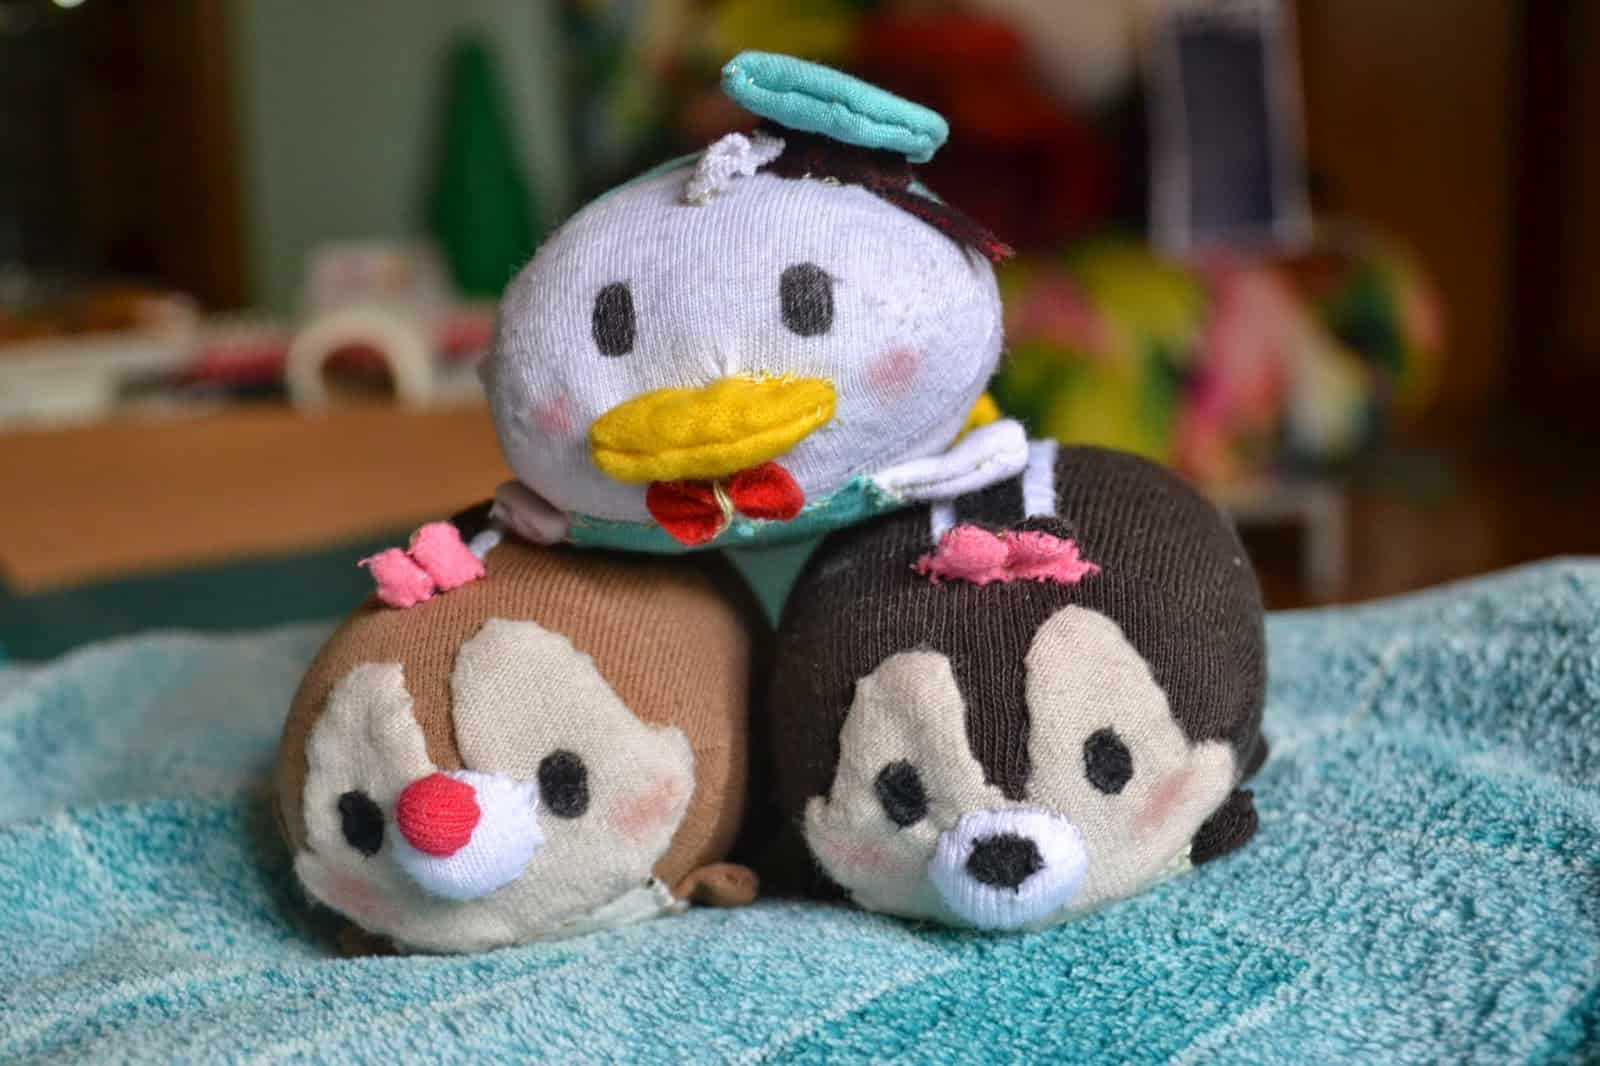 Tsum tsums made from old socks